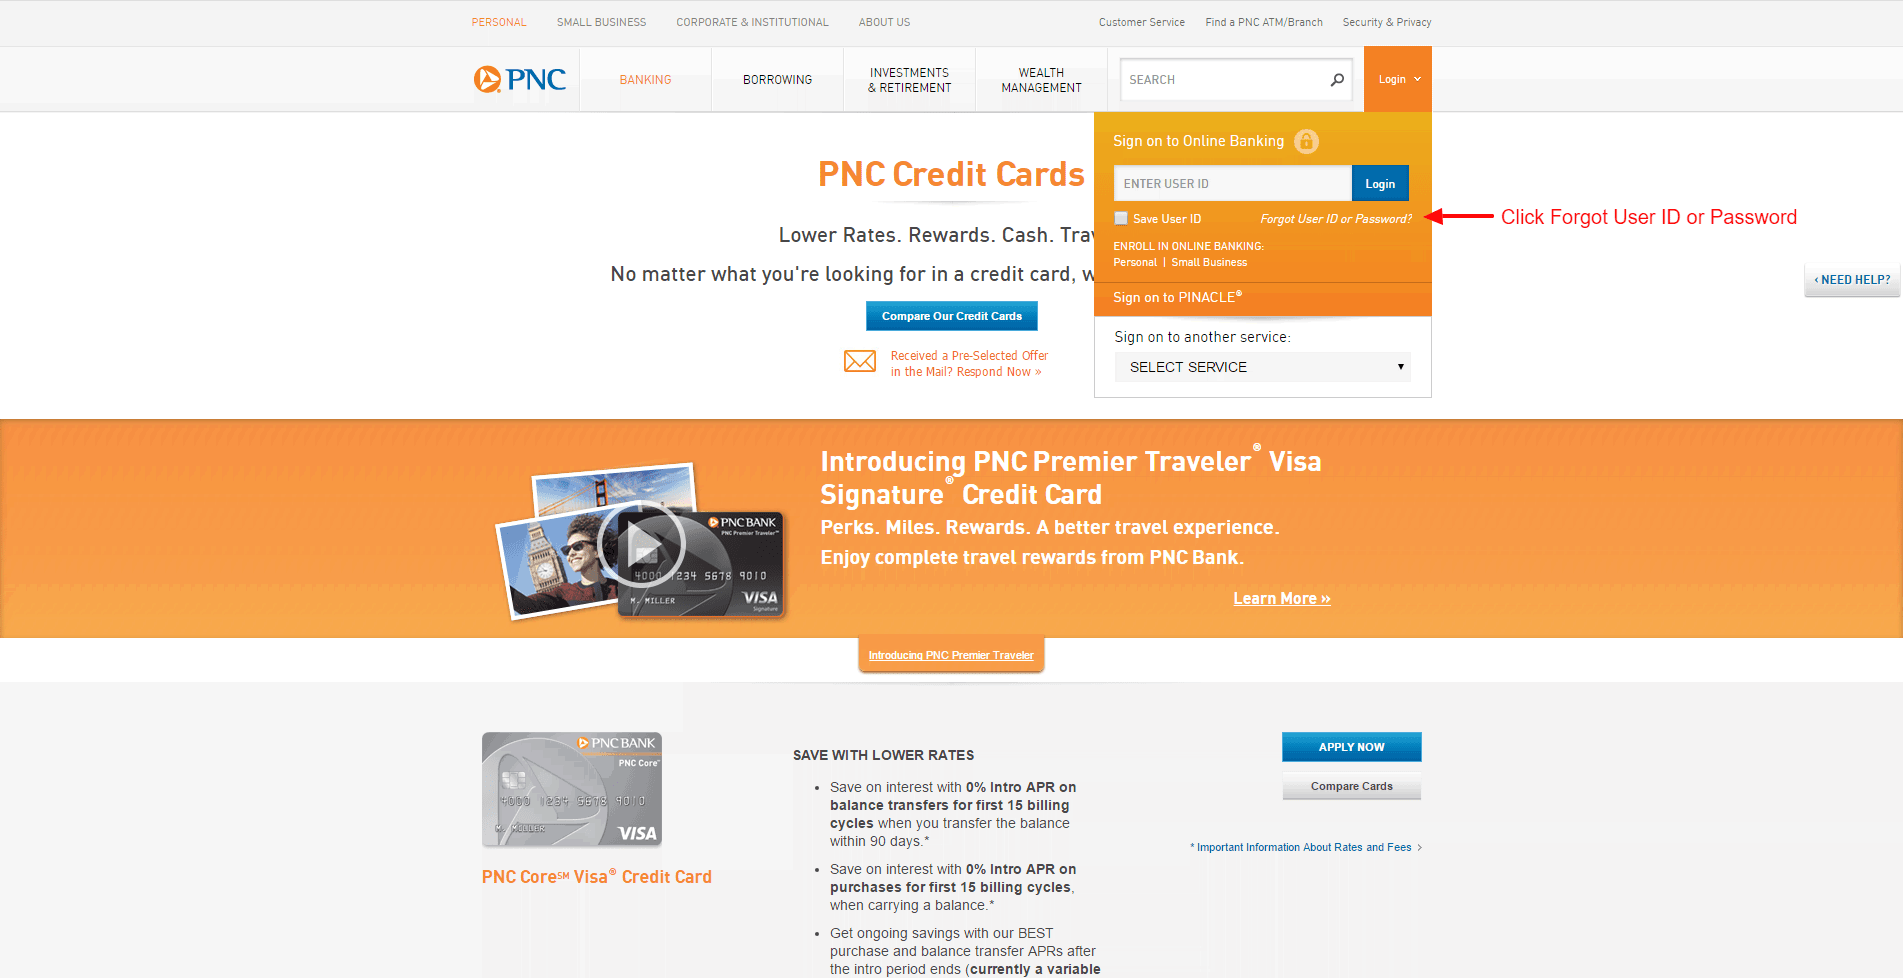 How to Login to PNC Bank Online Banking?